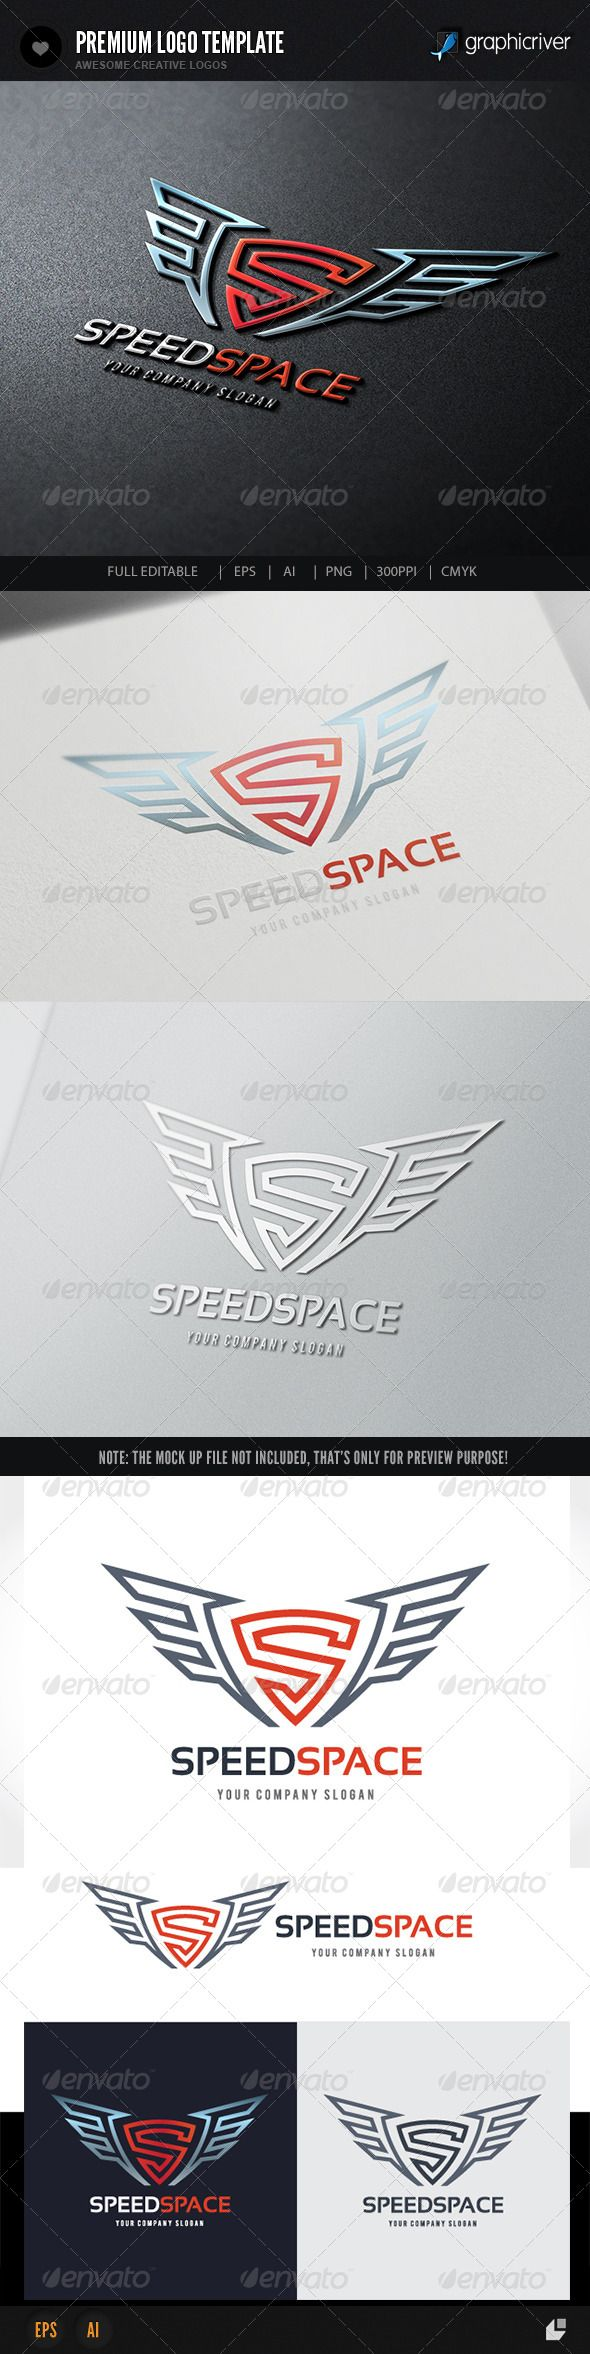 Speed Space Logo — Vector EPS #media #transport • Available here → https://graphicriver.net/item/speed-space-logo/8216478?ref=pxcr